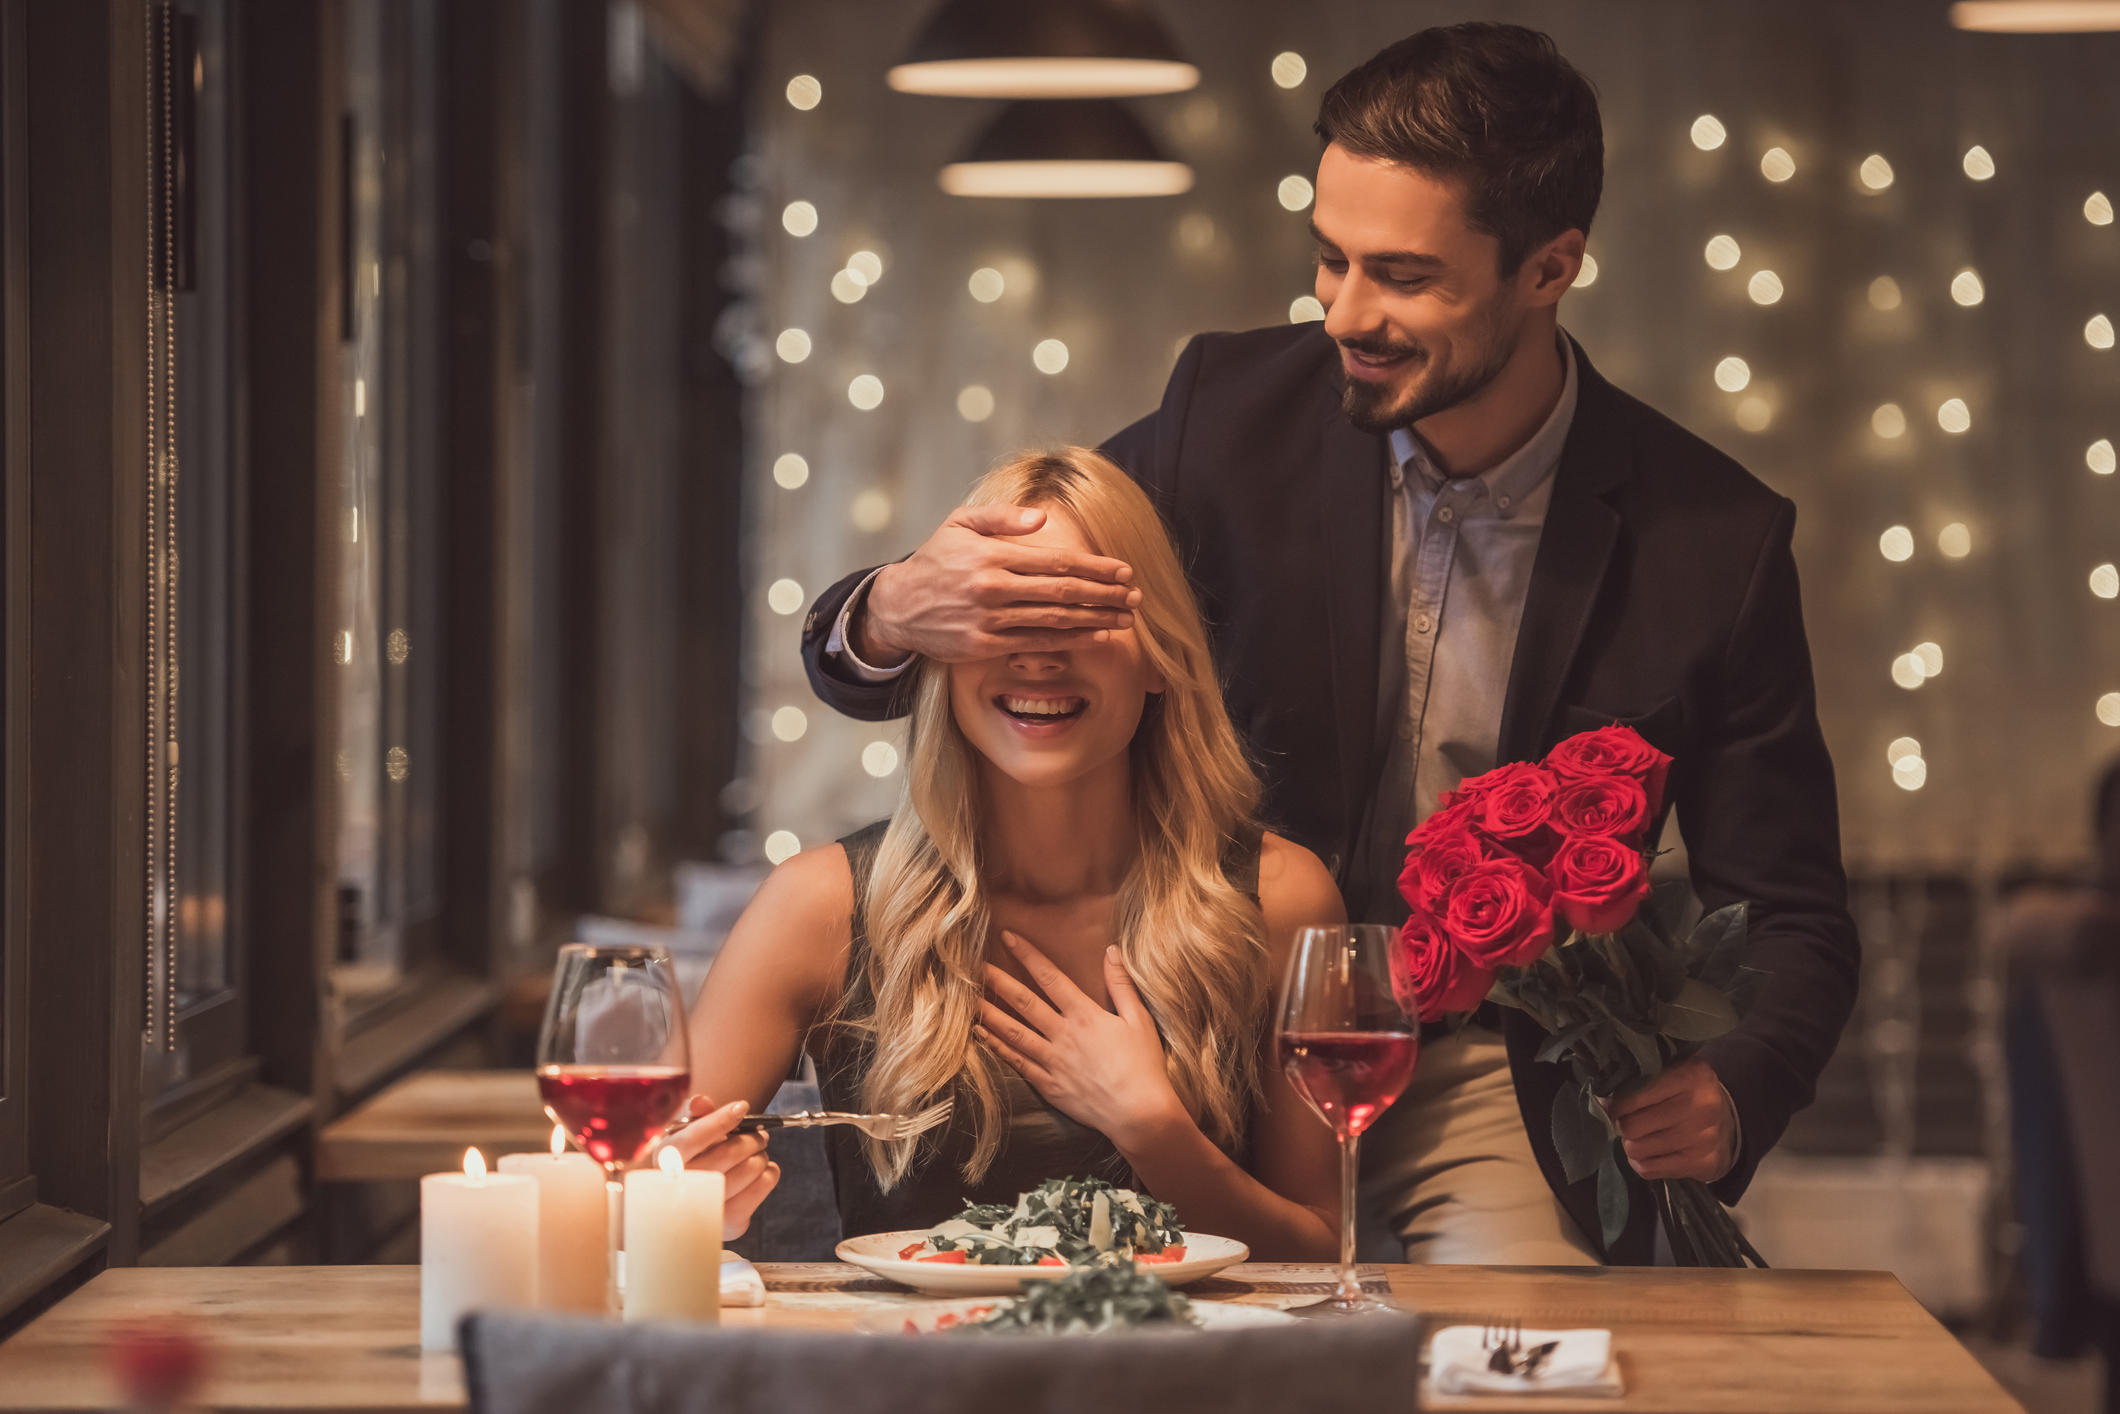 Handsome elegant man is holding roses and covering his girlfriend's eyes while making a surprise in restaurant, both are smiling